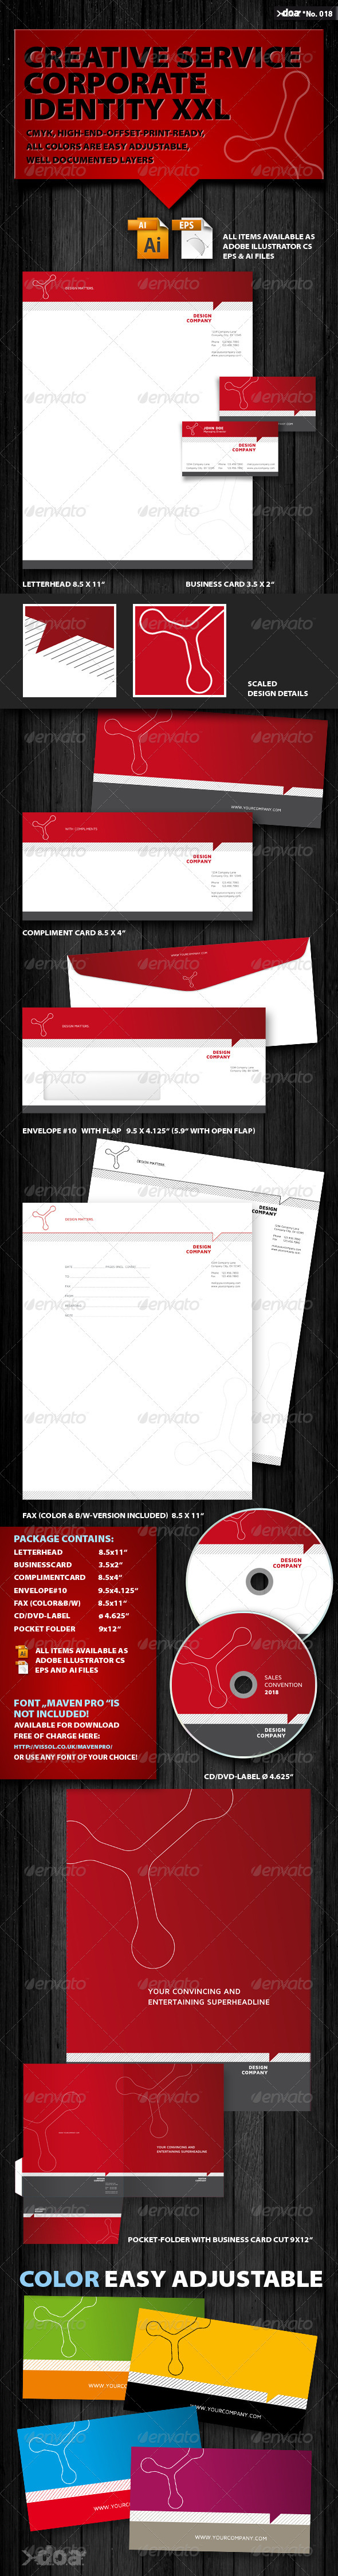 Creative Service Corporate Identity XXL - Stationery Print Templates